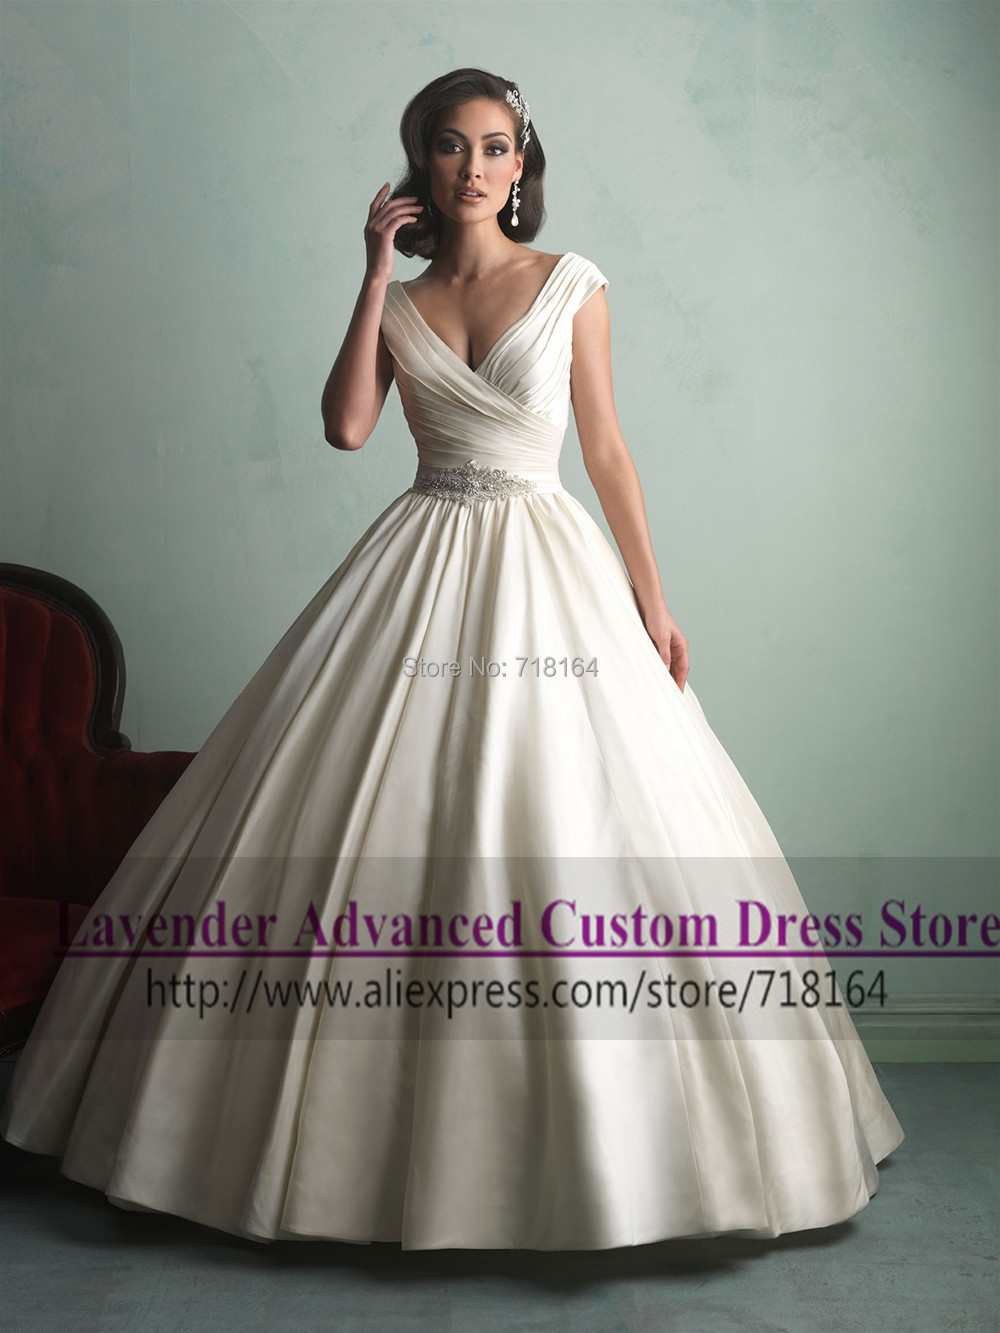 Nice Bridal Gowns Birmingham Al Ideas - Wedding and flowers ...